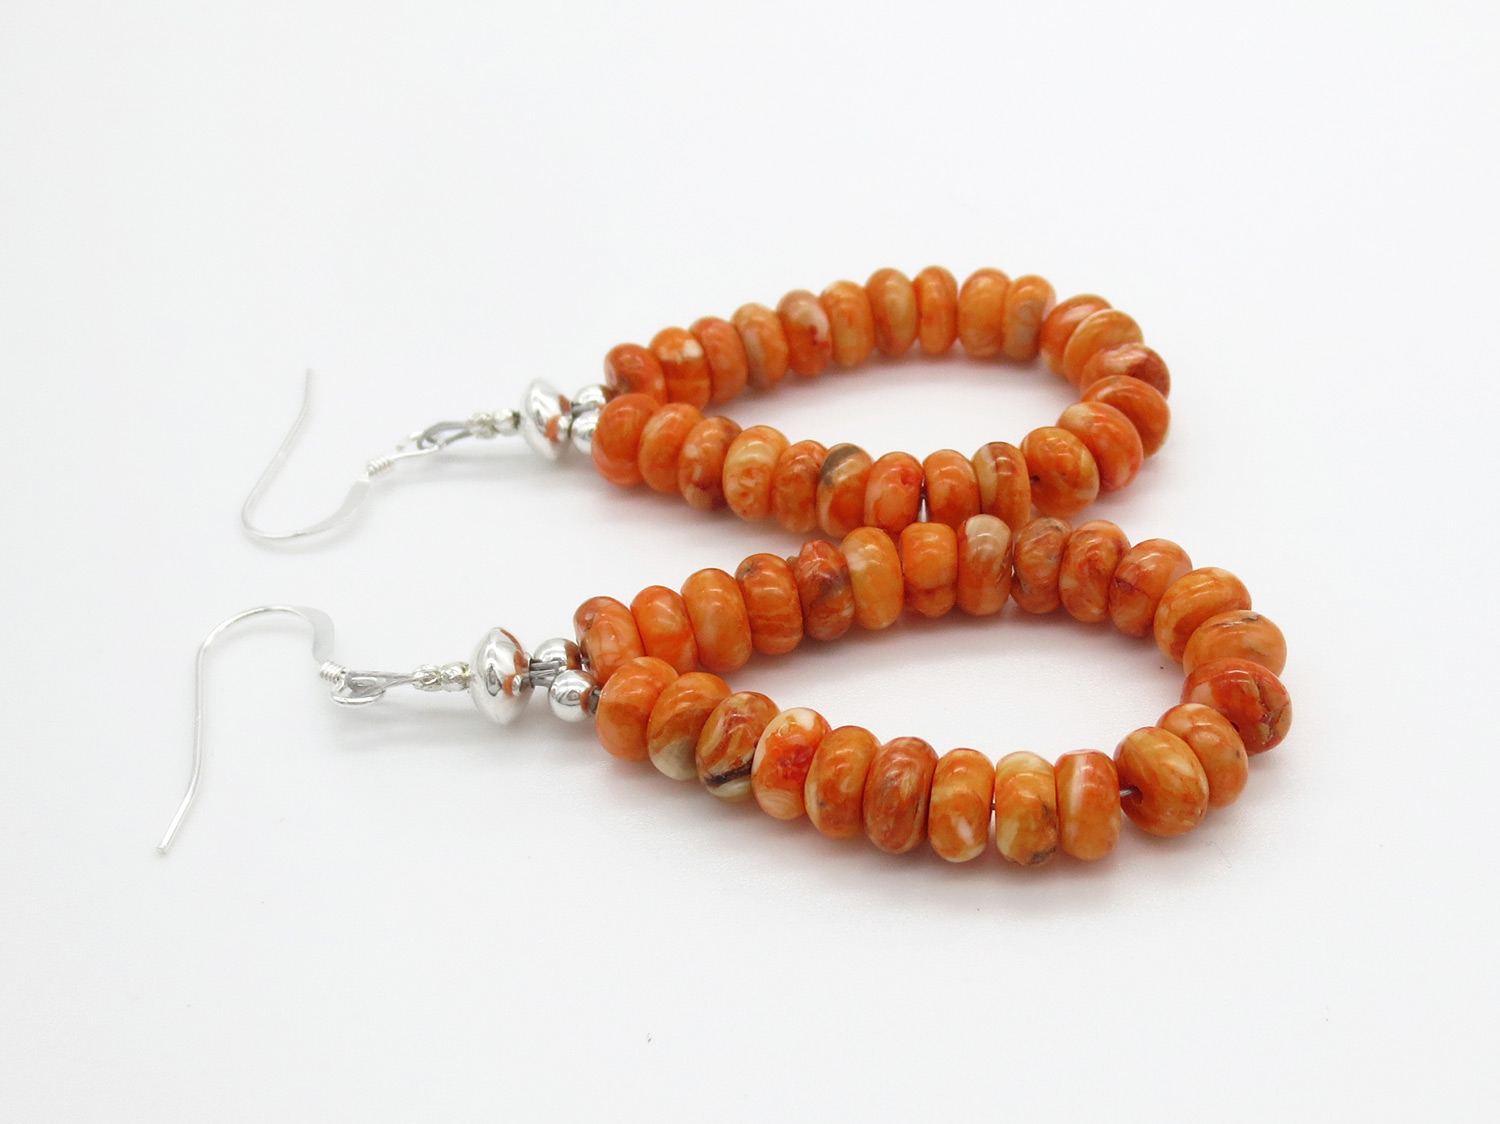 Image 1 of   Orange Spiny Oyster Rondelle Bead Earrings Native American Jewelry - 3867rb